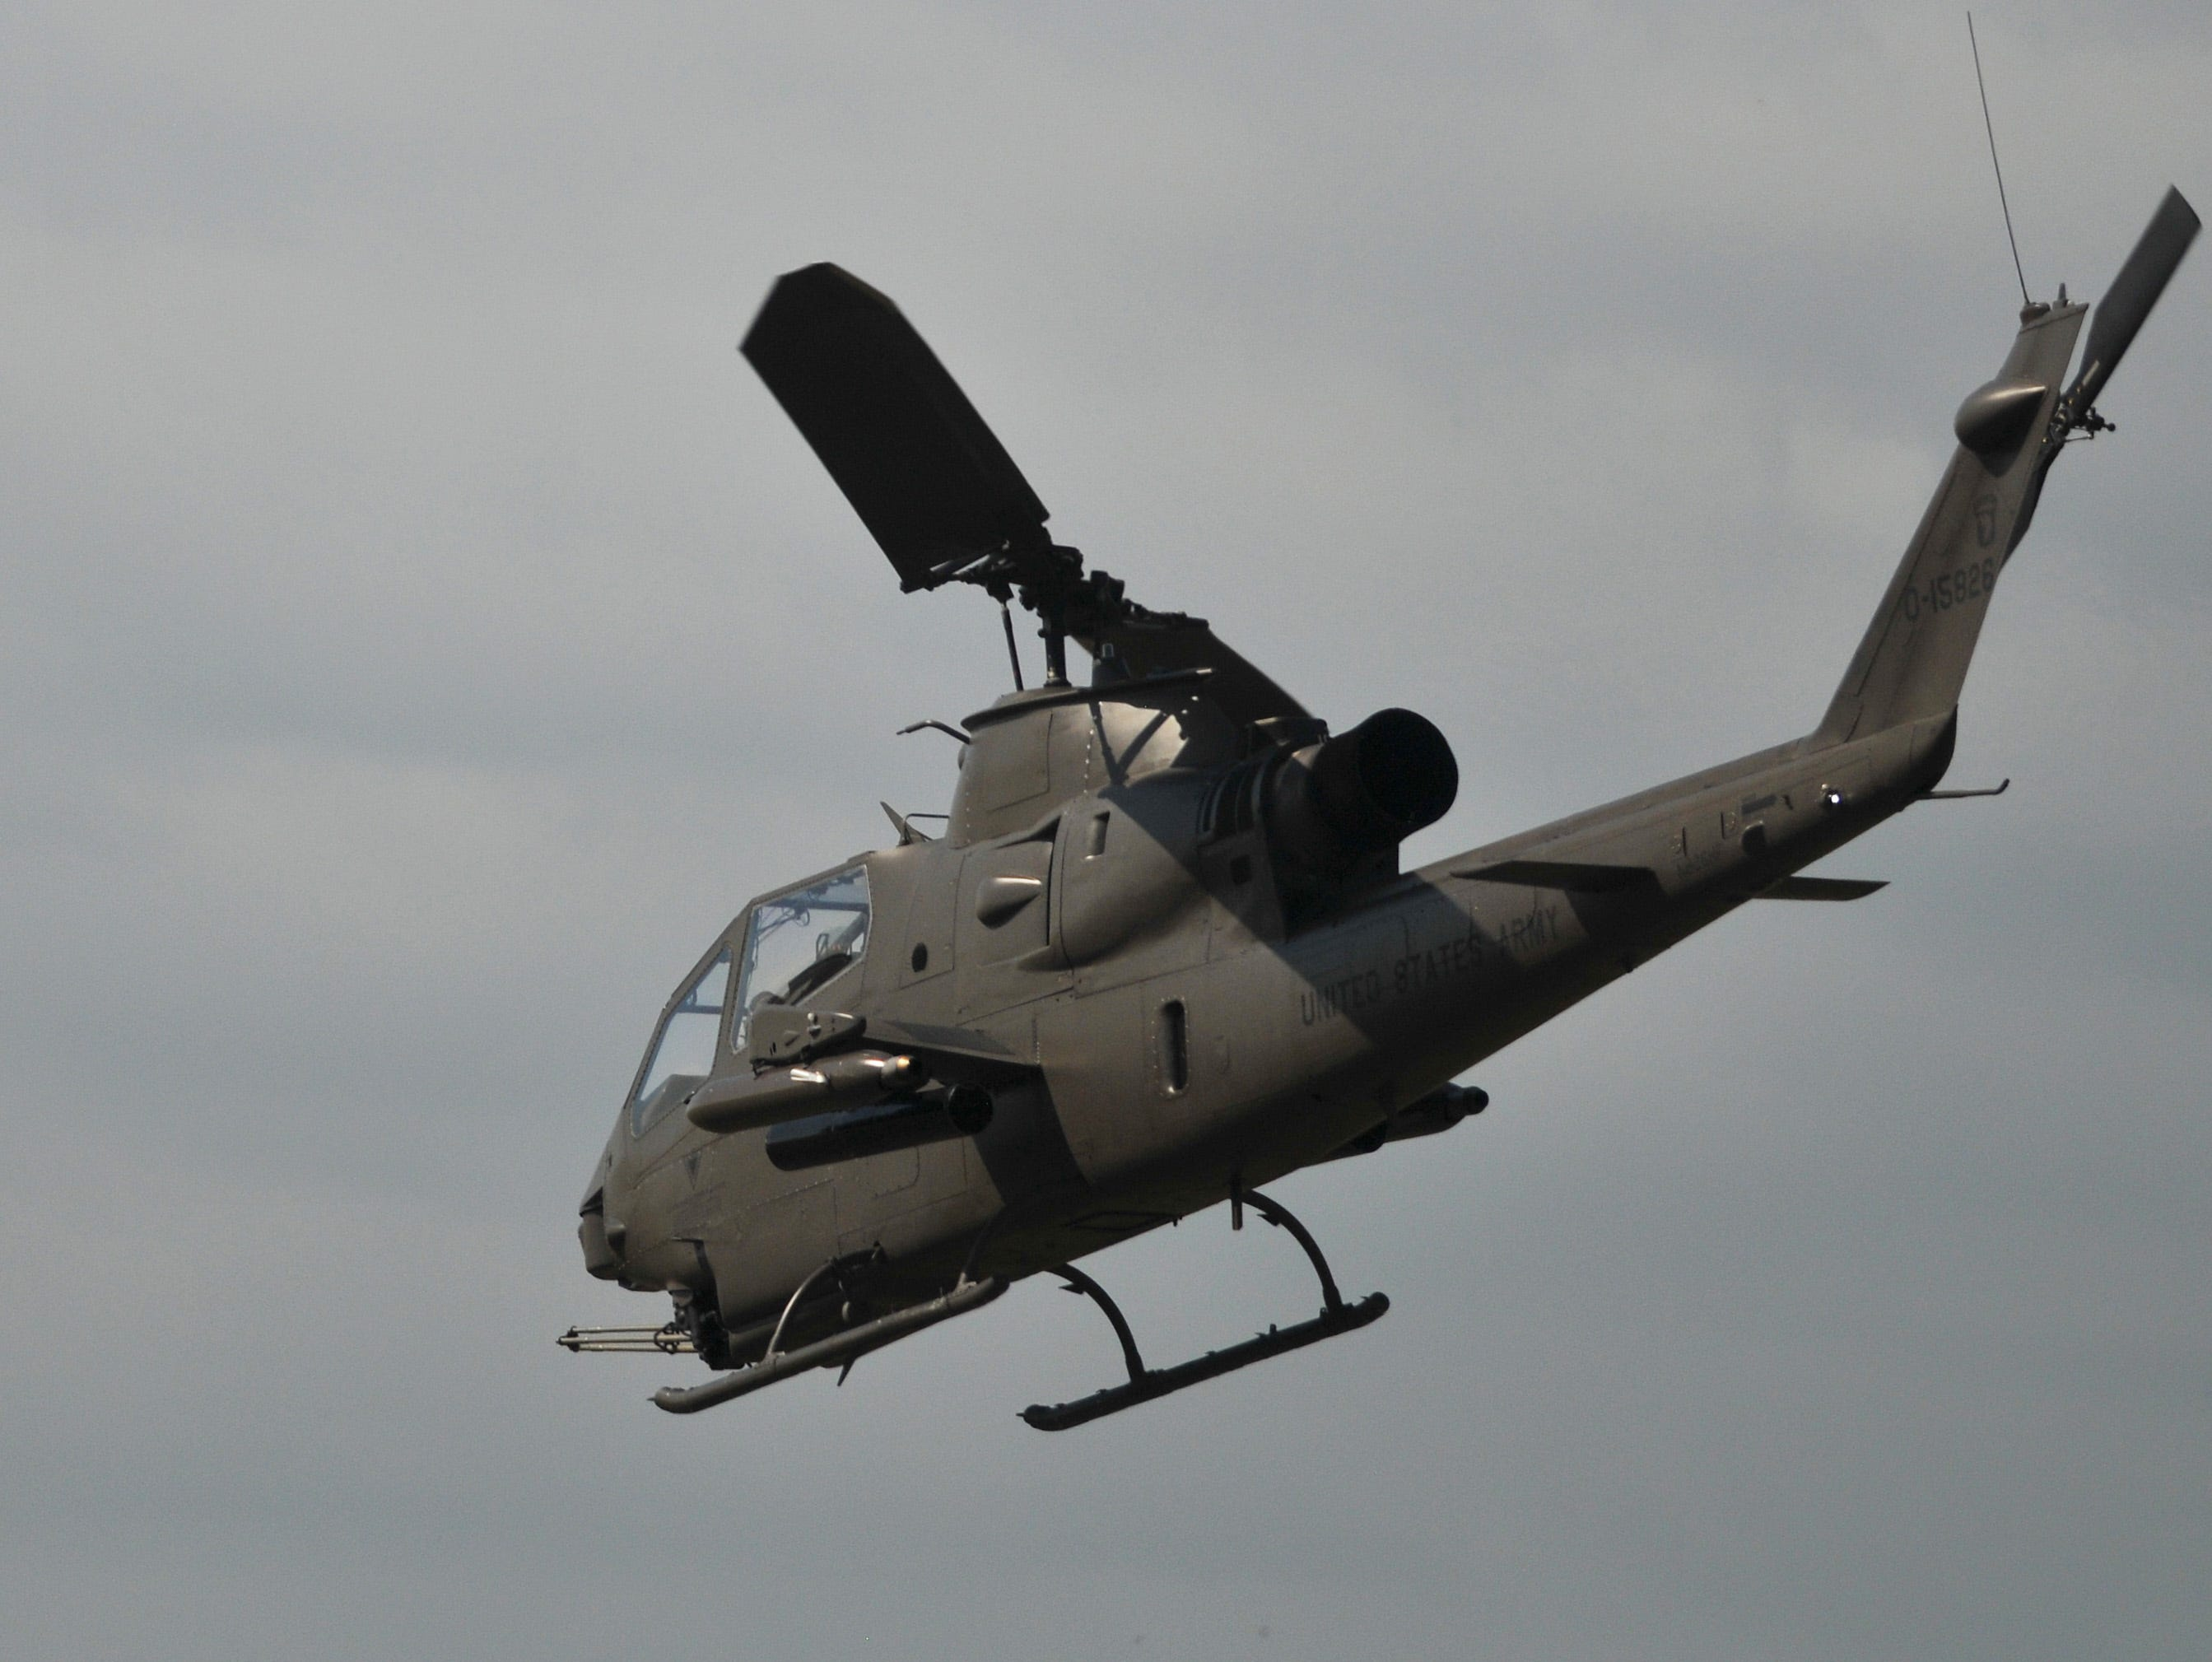 An AH-1 Cobra makes a pass over the airport. The 2019 Space Coast Warbird Air Show held their media day Thursday, promoting the Air Show that runs Friday, Saturday and Sunday at Space Coast Regional Airport in Titusville, with a Friday afternoon and evening show with fireworks, and shows Saturday and Sunday afternoon.